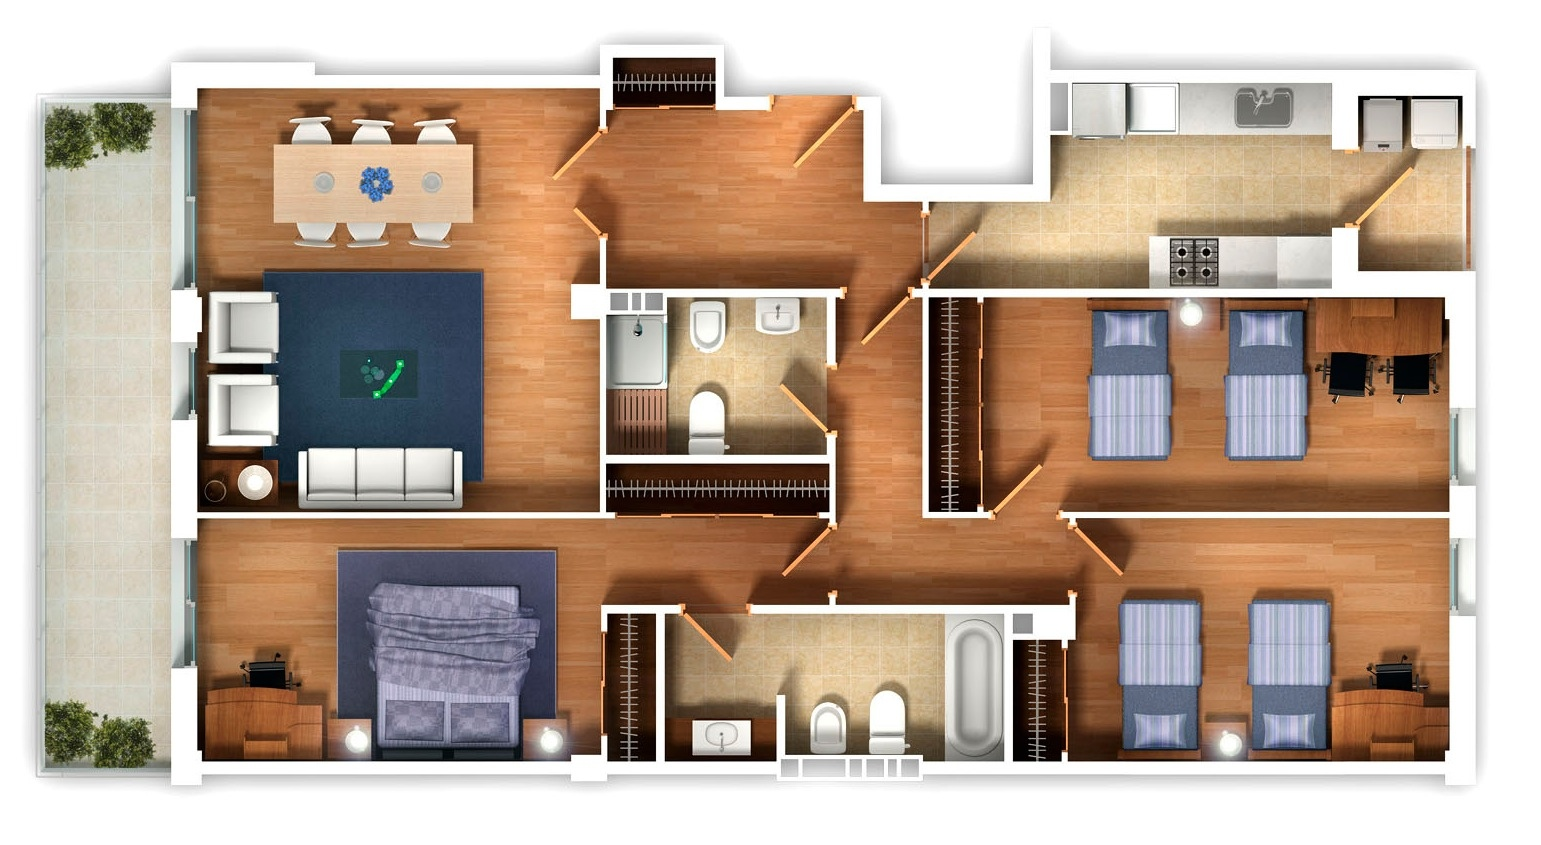 25 three bedroom house apartment floor plans for Digital house design